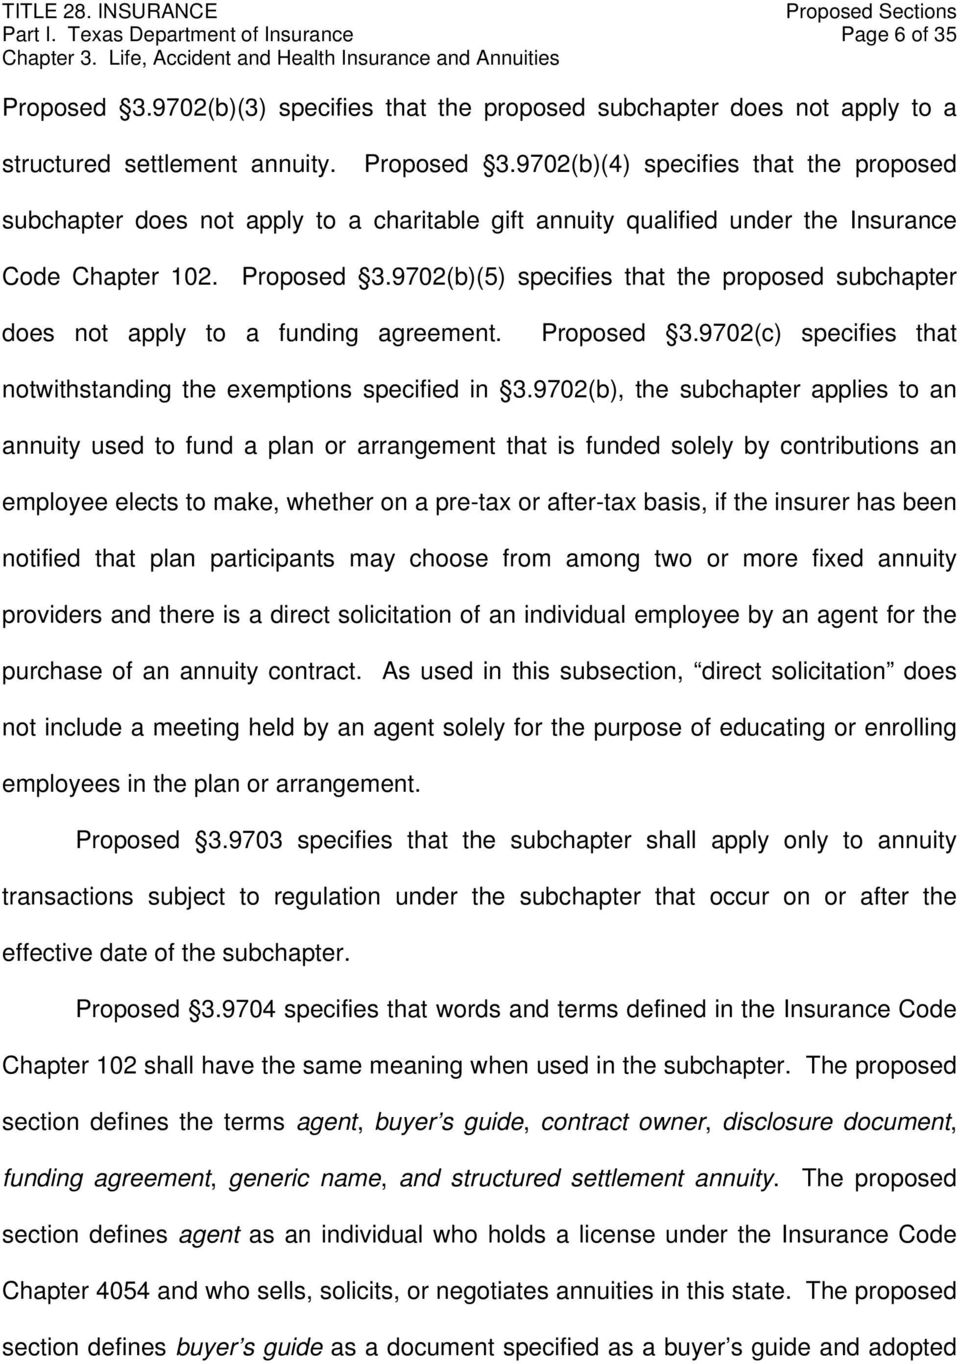 9702(b)(4) specifies that the proposed subchapter does not apply to a charitable gift annuity qualified under the Insurance Code Chapter 102. Proposed 3.